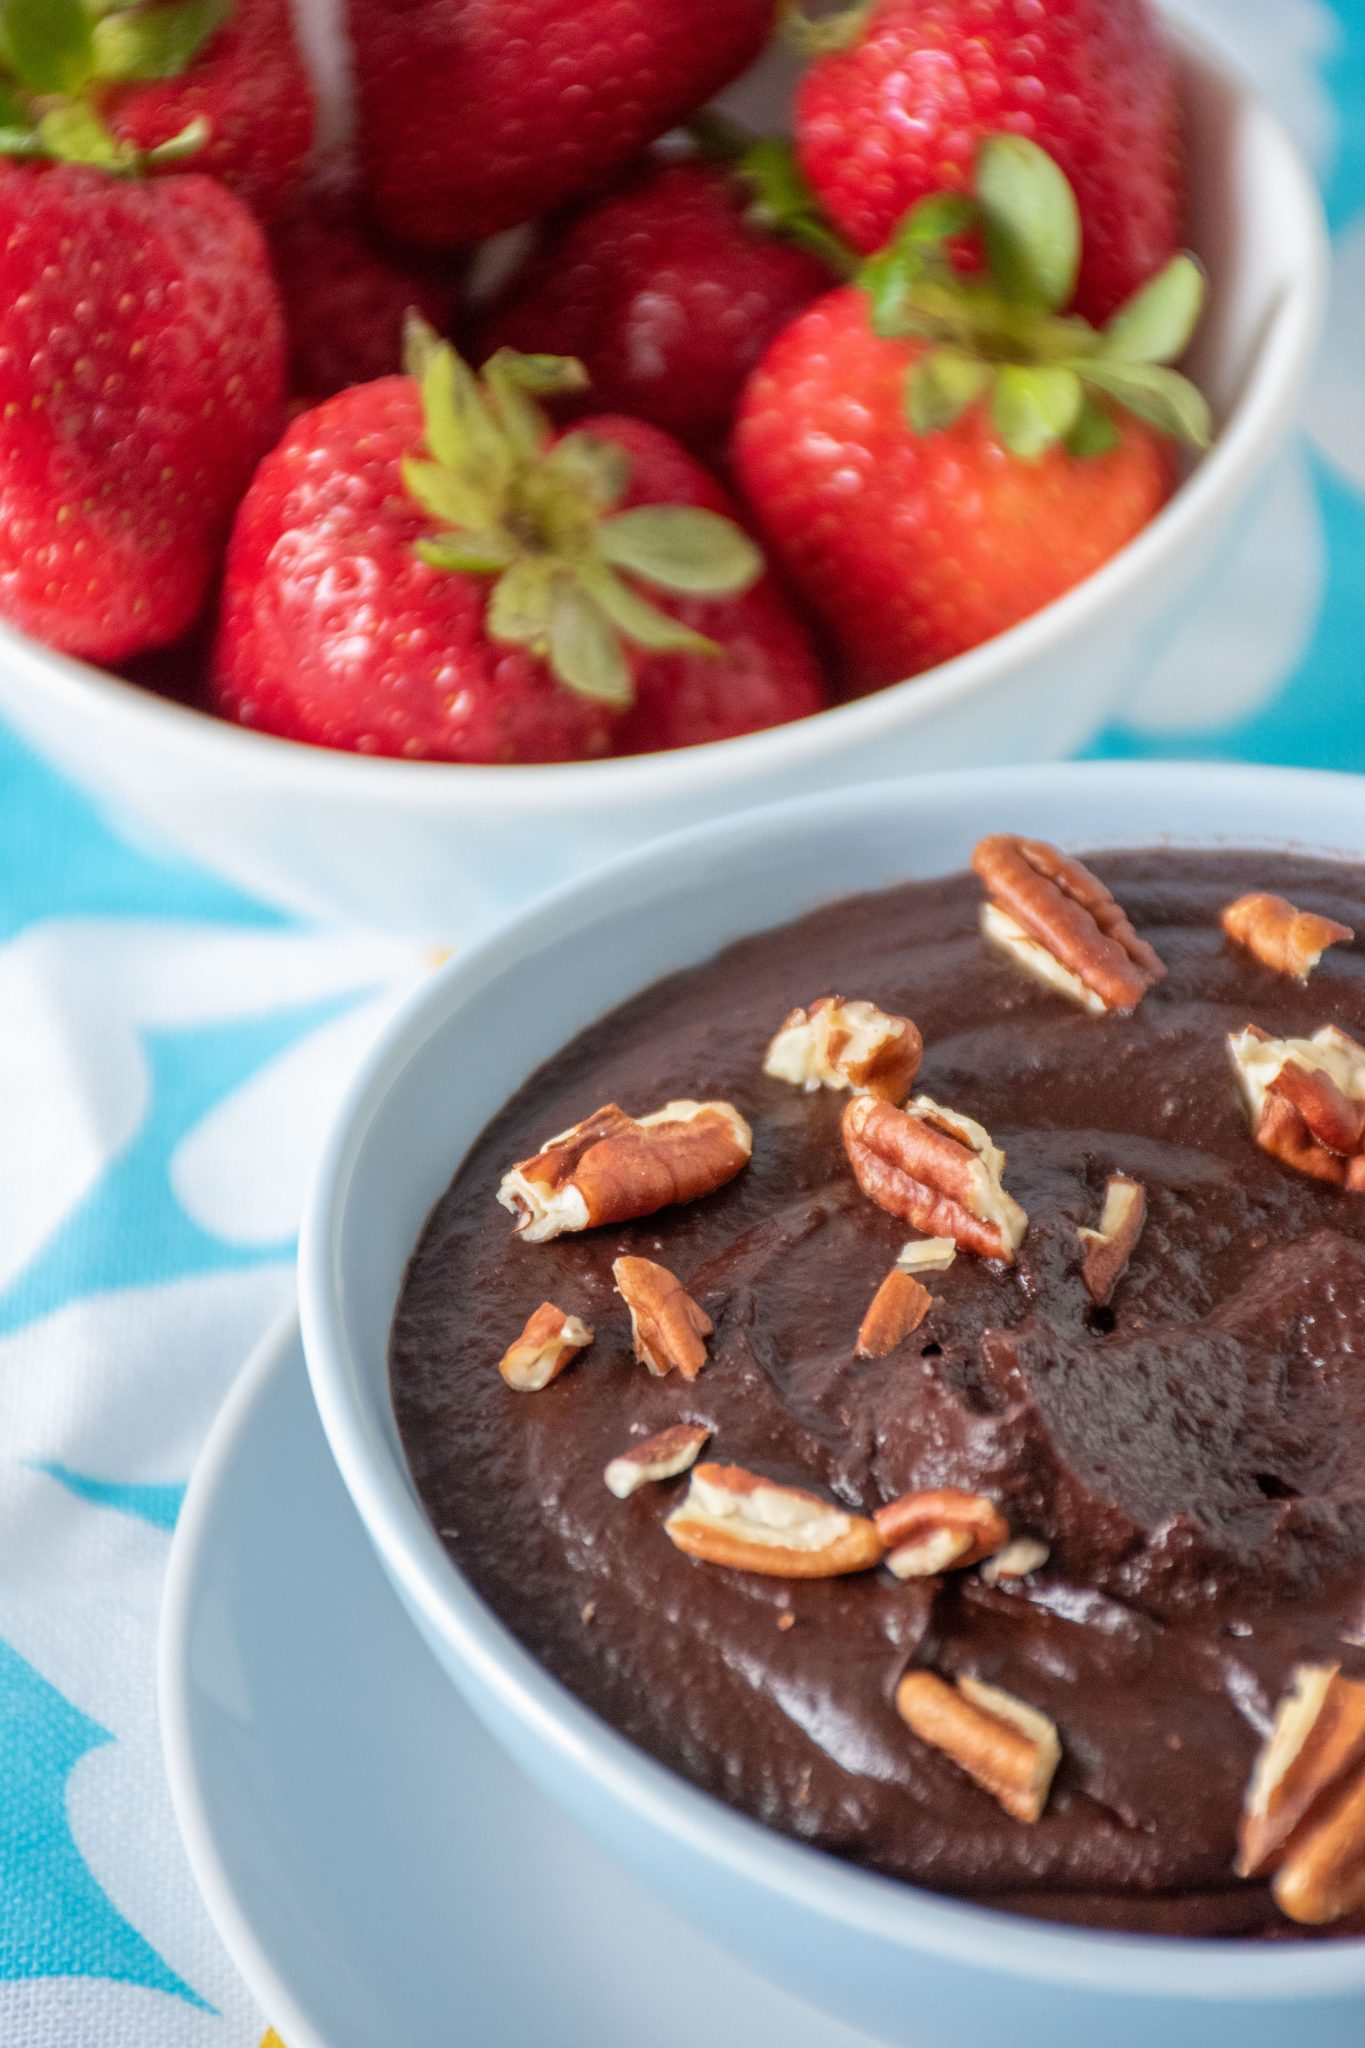 Close up of brownie batter in a bowl with pecan pieces on top. A bowl of strawberries is seen behind.